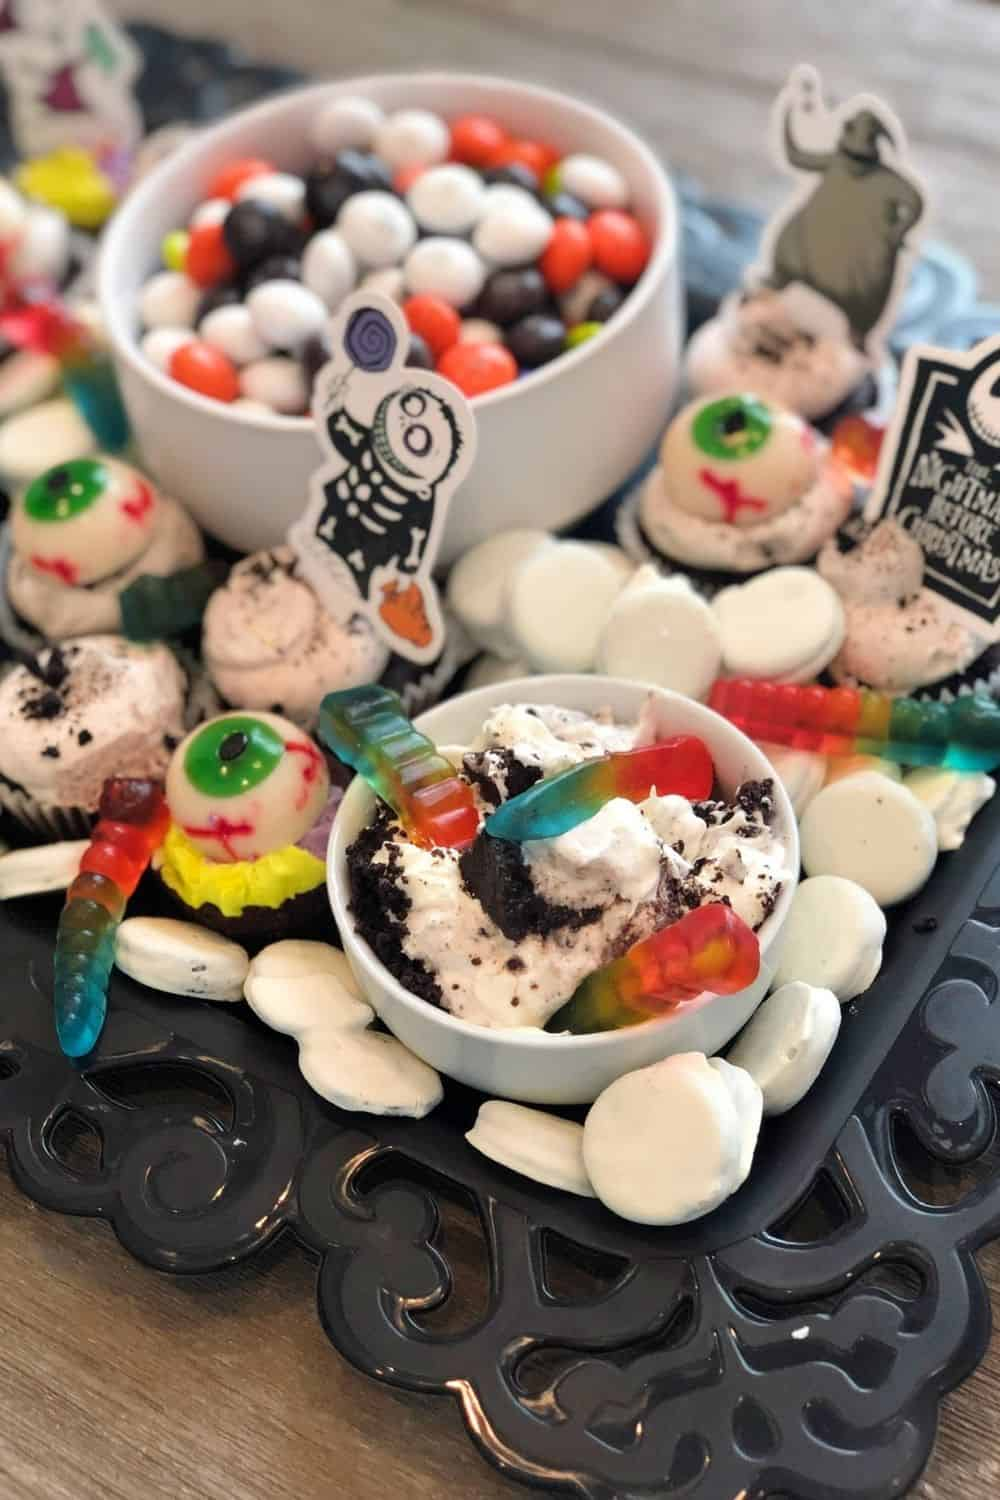 nightmare before Christmas cake toppers for the tray